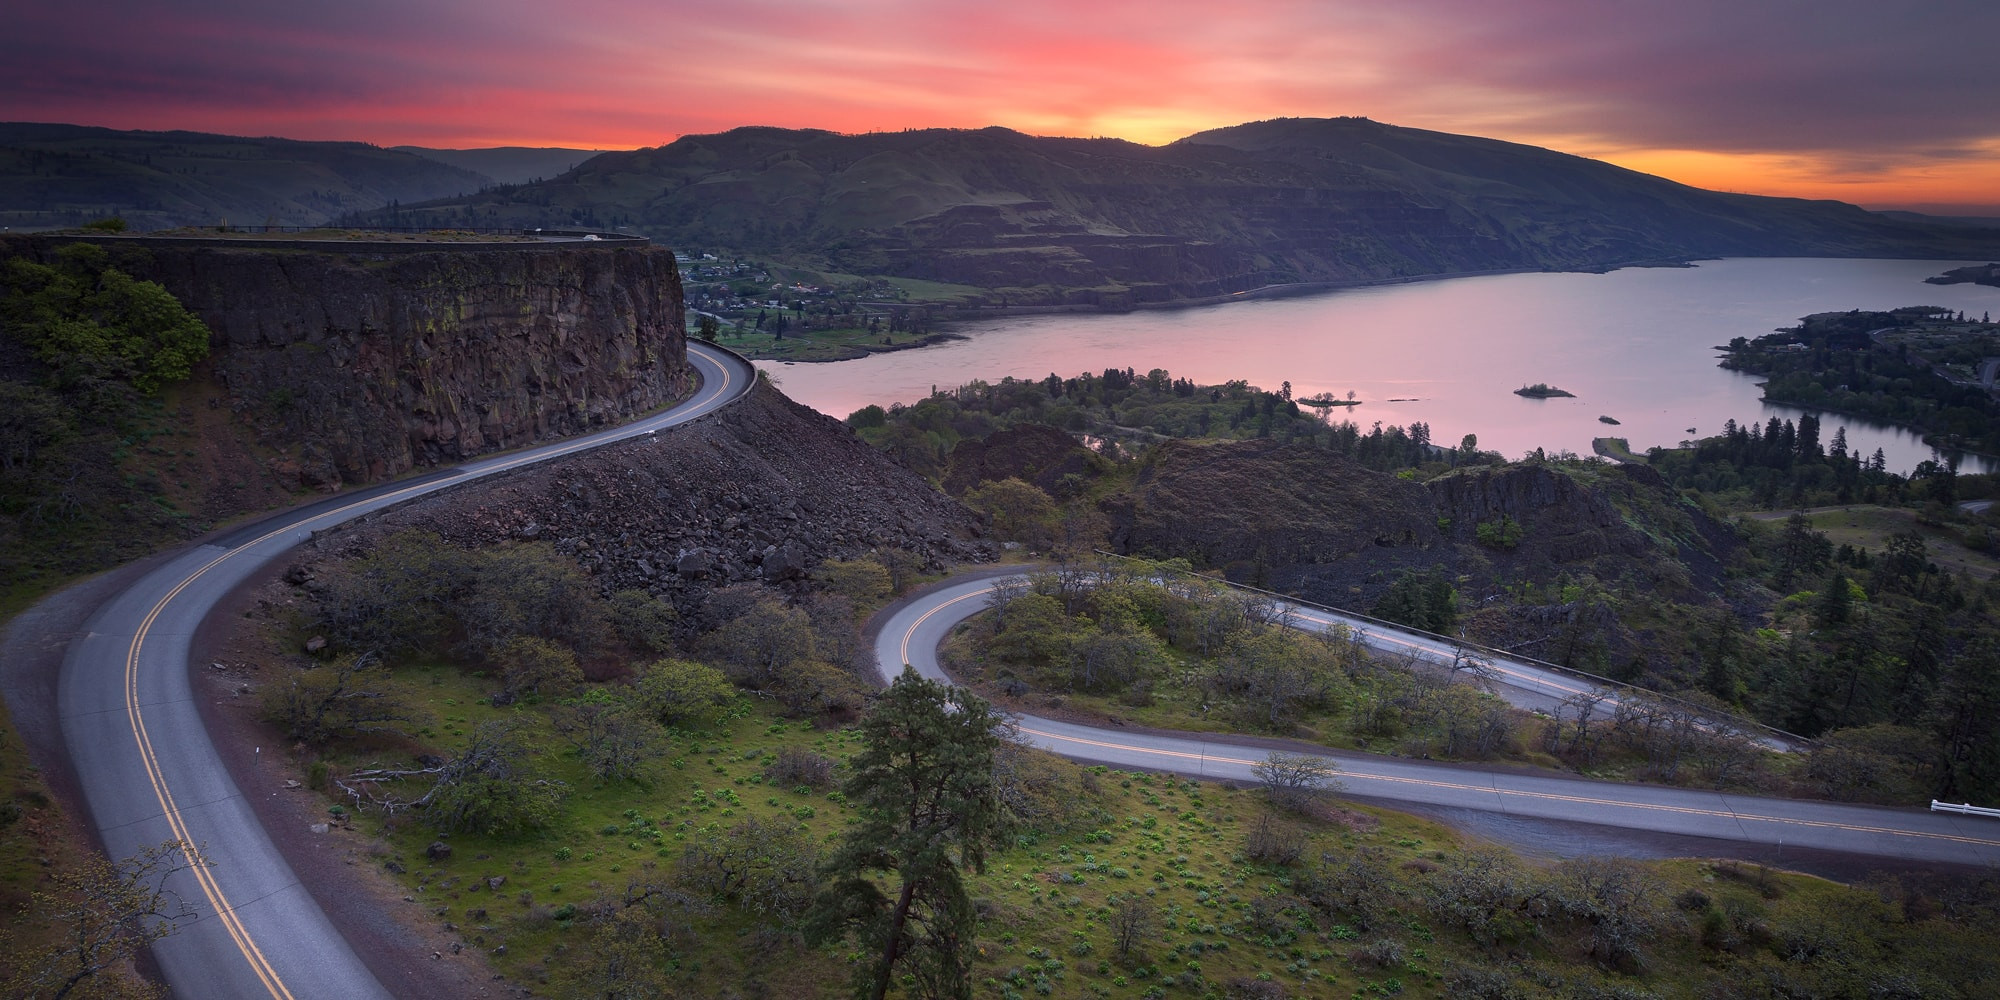 Columbia River Gorge at Sunset